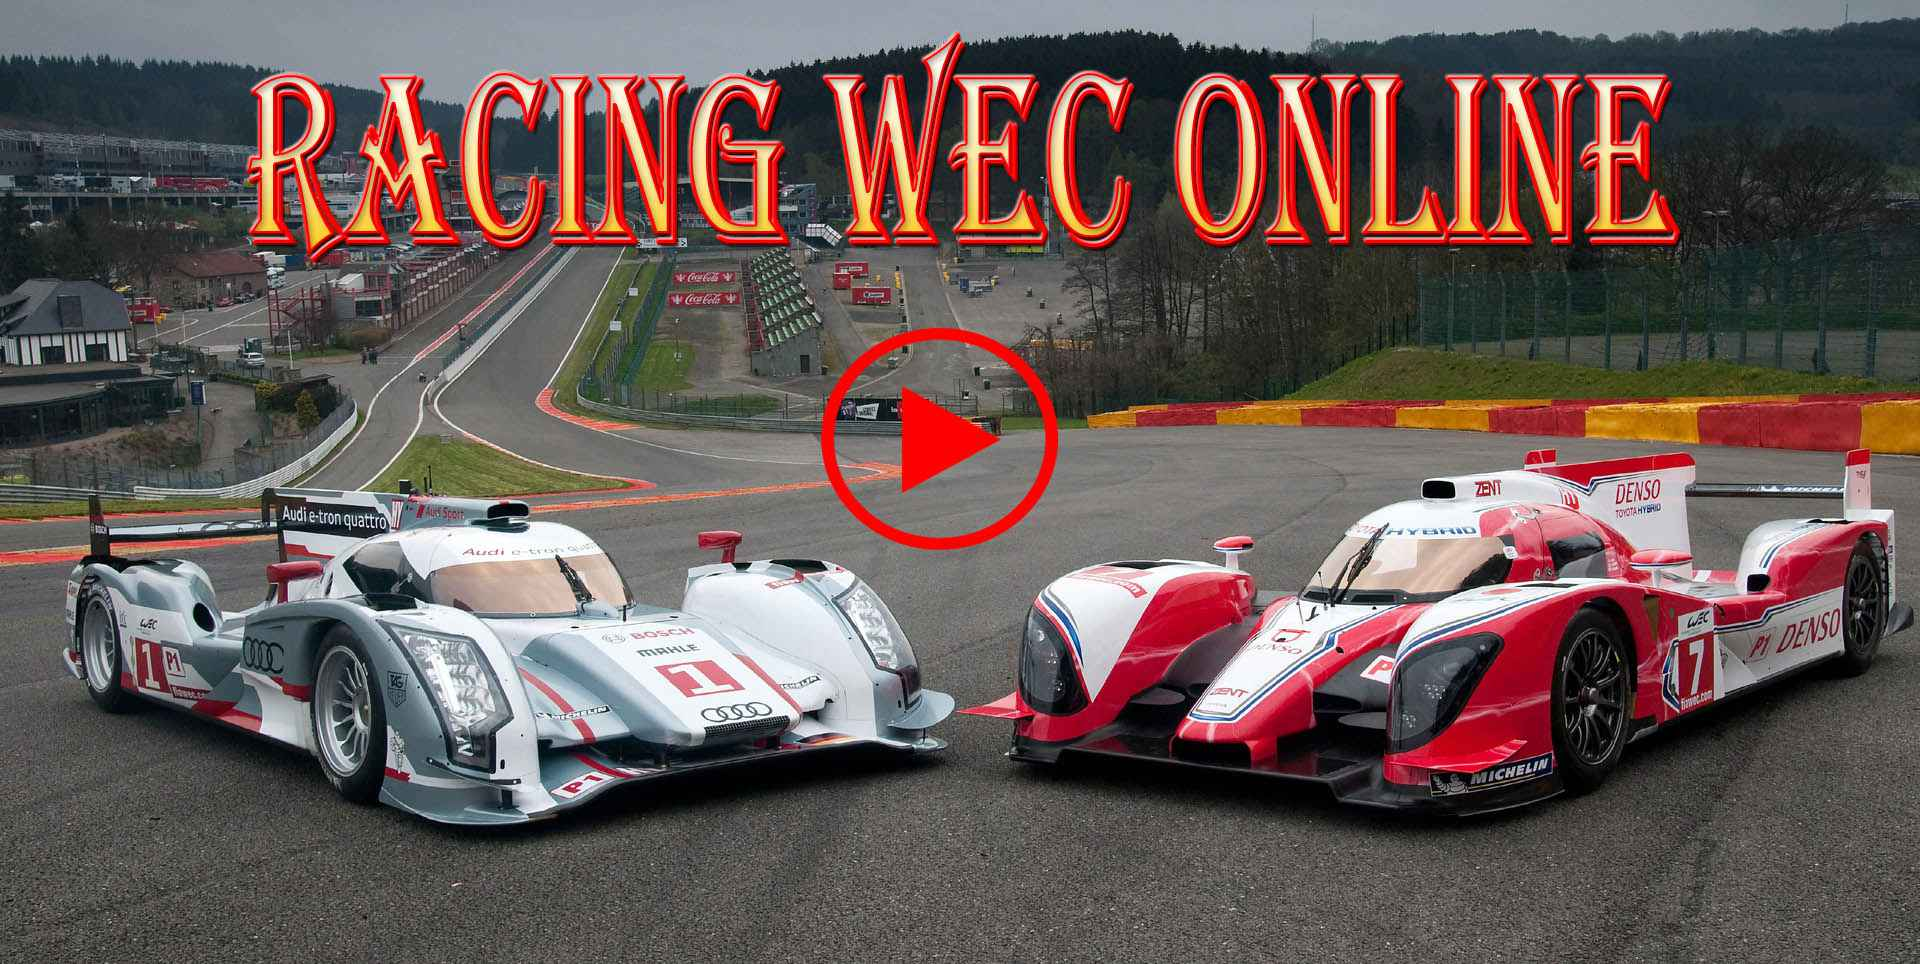 6 Hours of Fuji 2016 Live Streaming